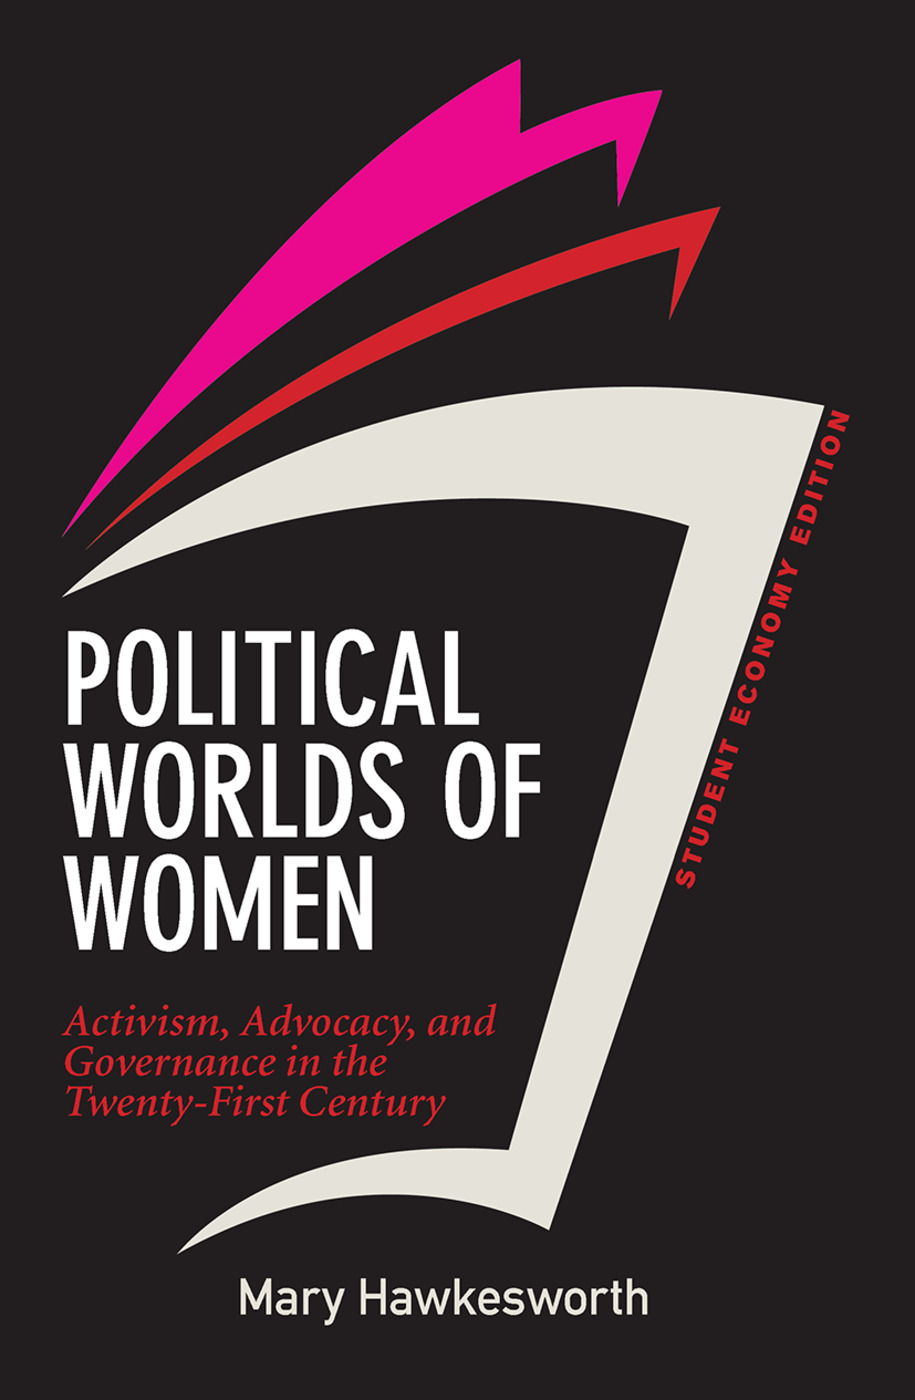 Political Worlds of Women, Student Economy Edition: Activism, Advocacy, and Governance in the Twenty-First Century book cover